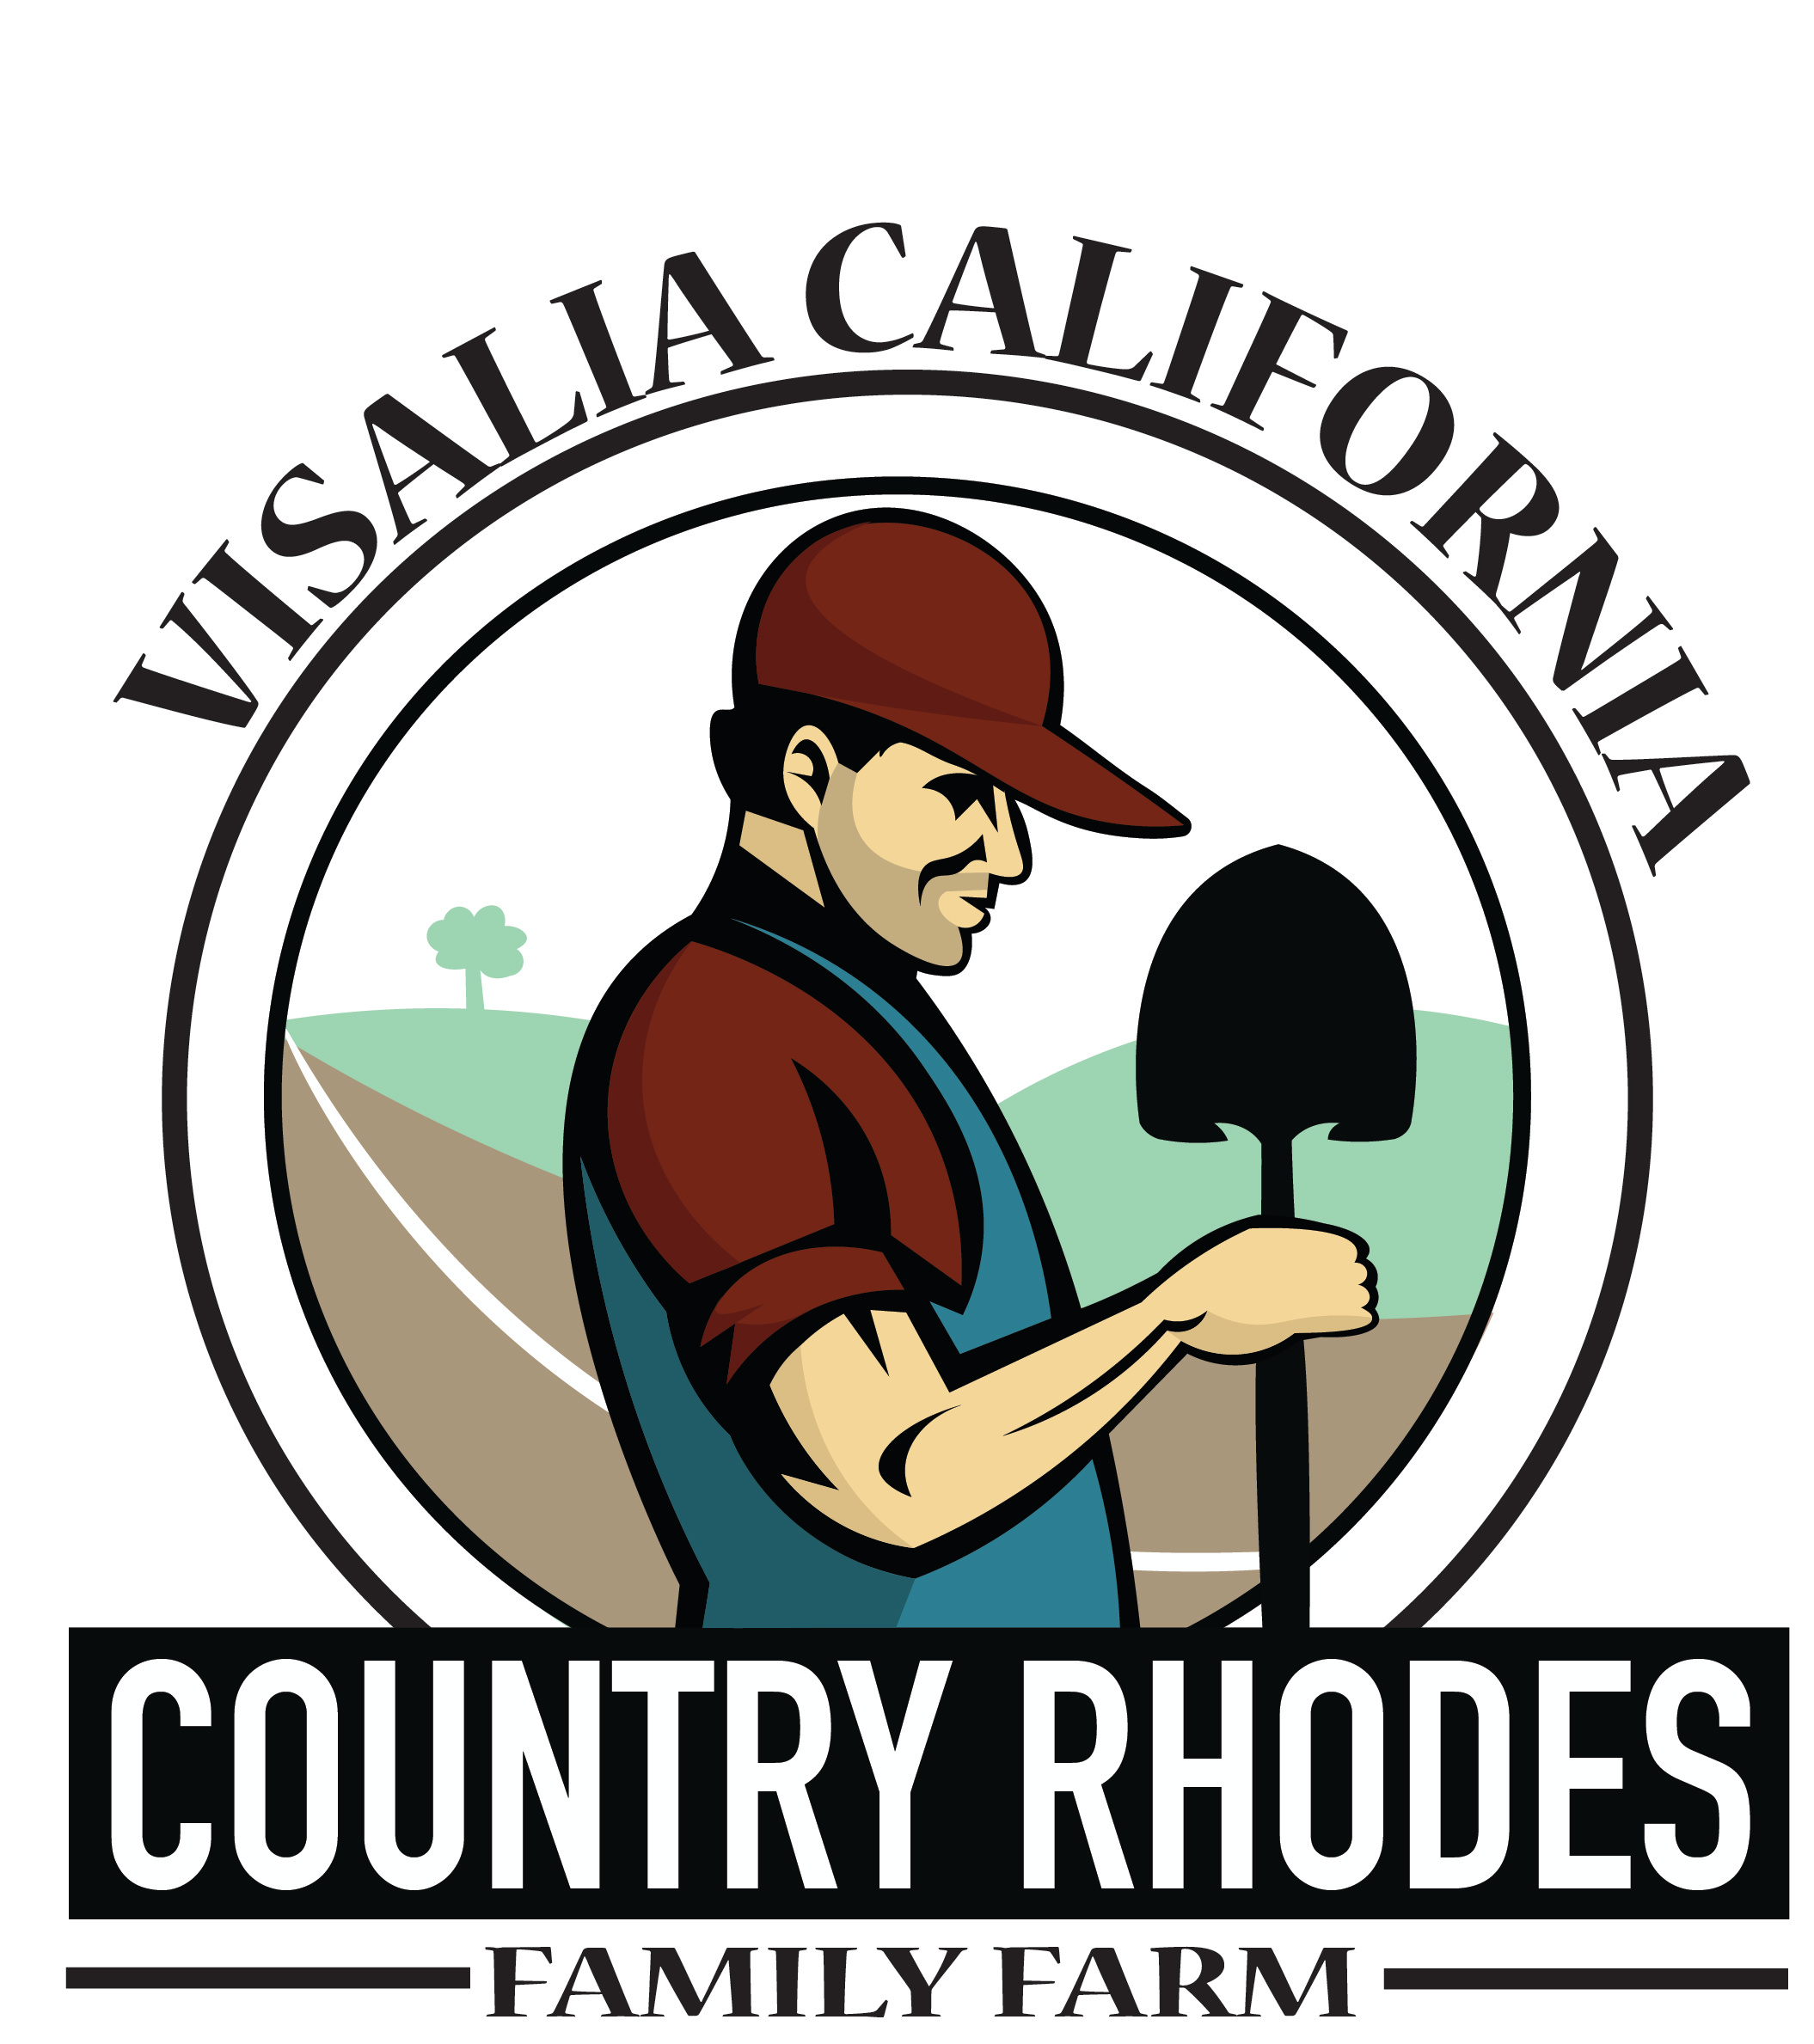 country rhodes